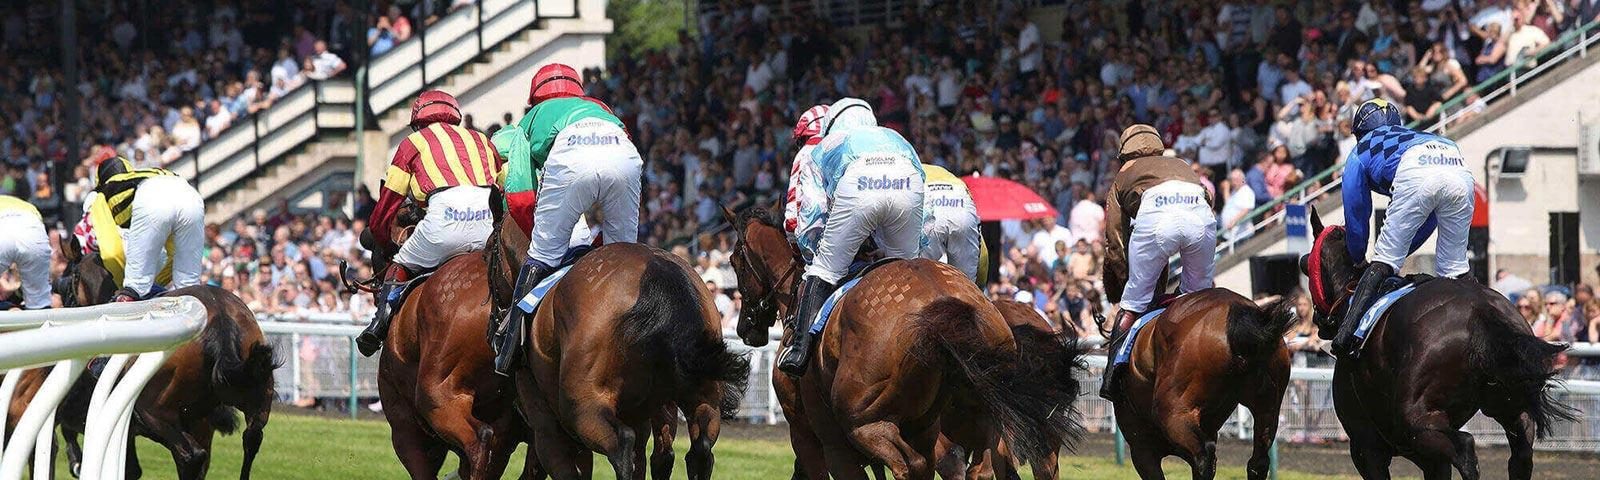 A view from behind as several Racehorses head towards the finishing line.